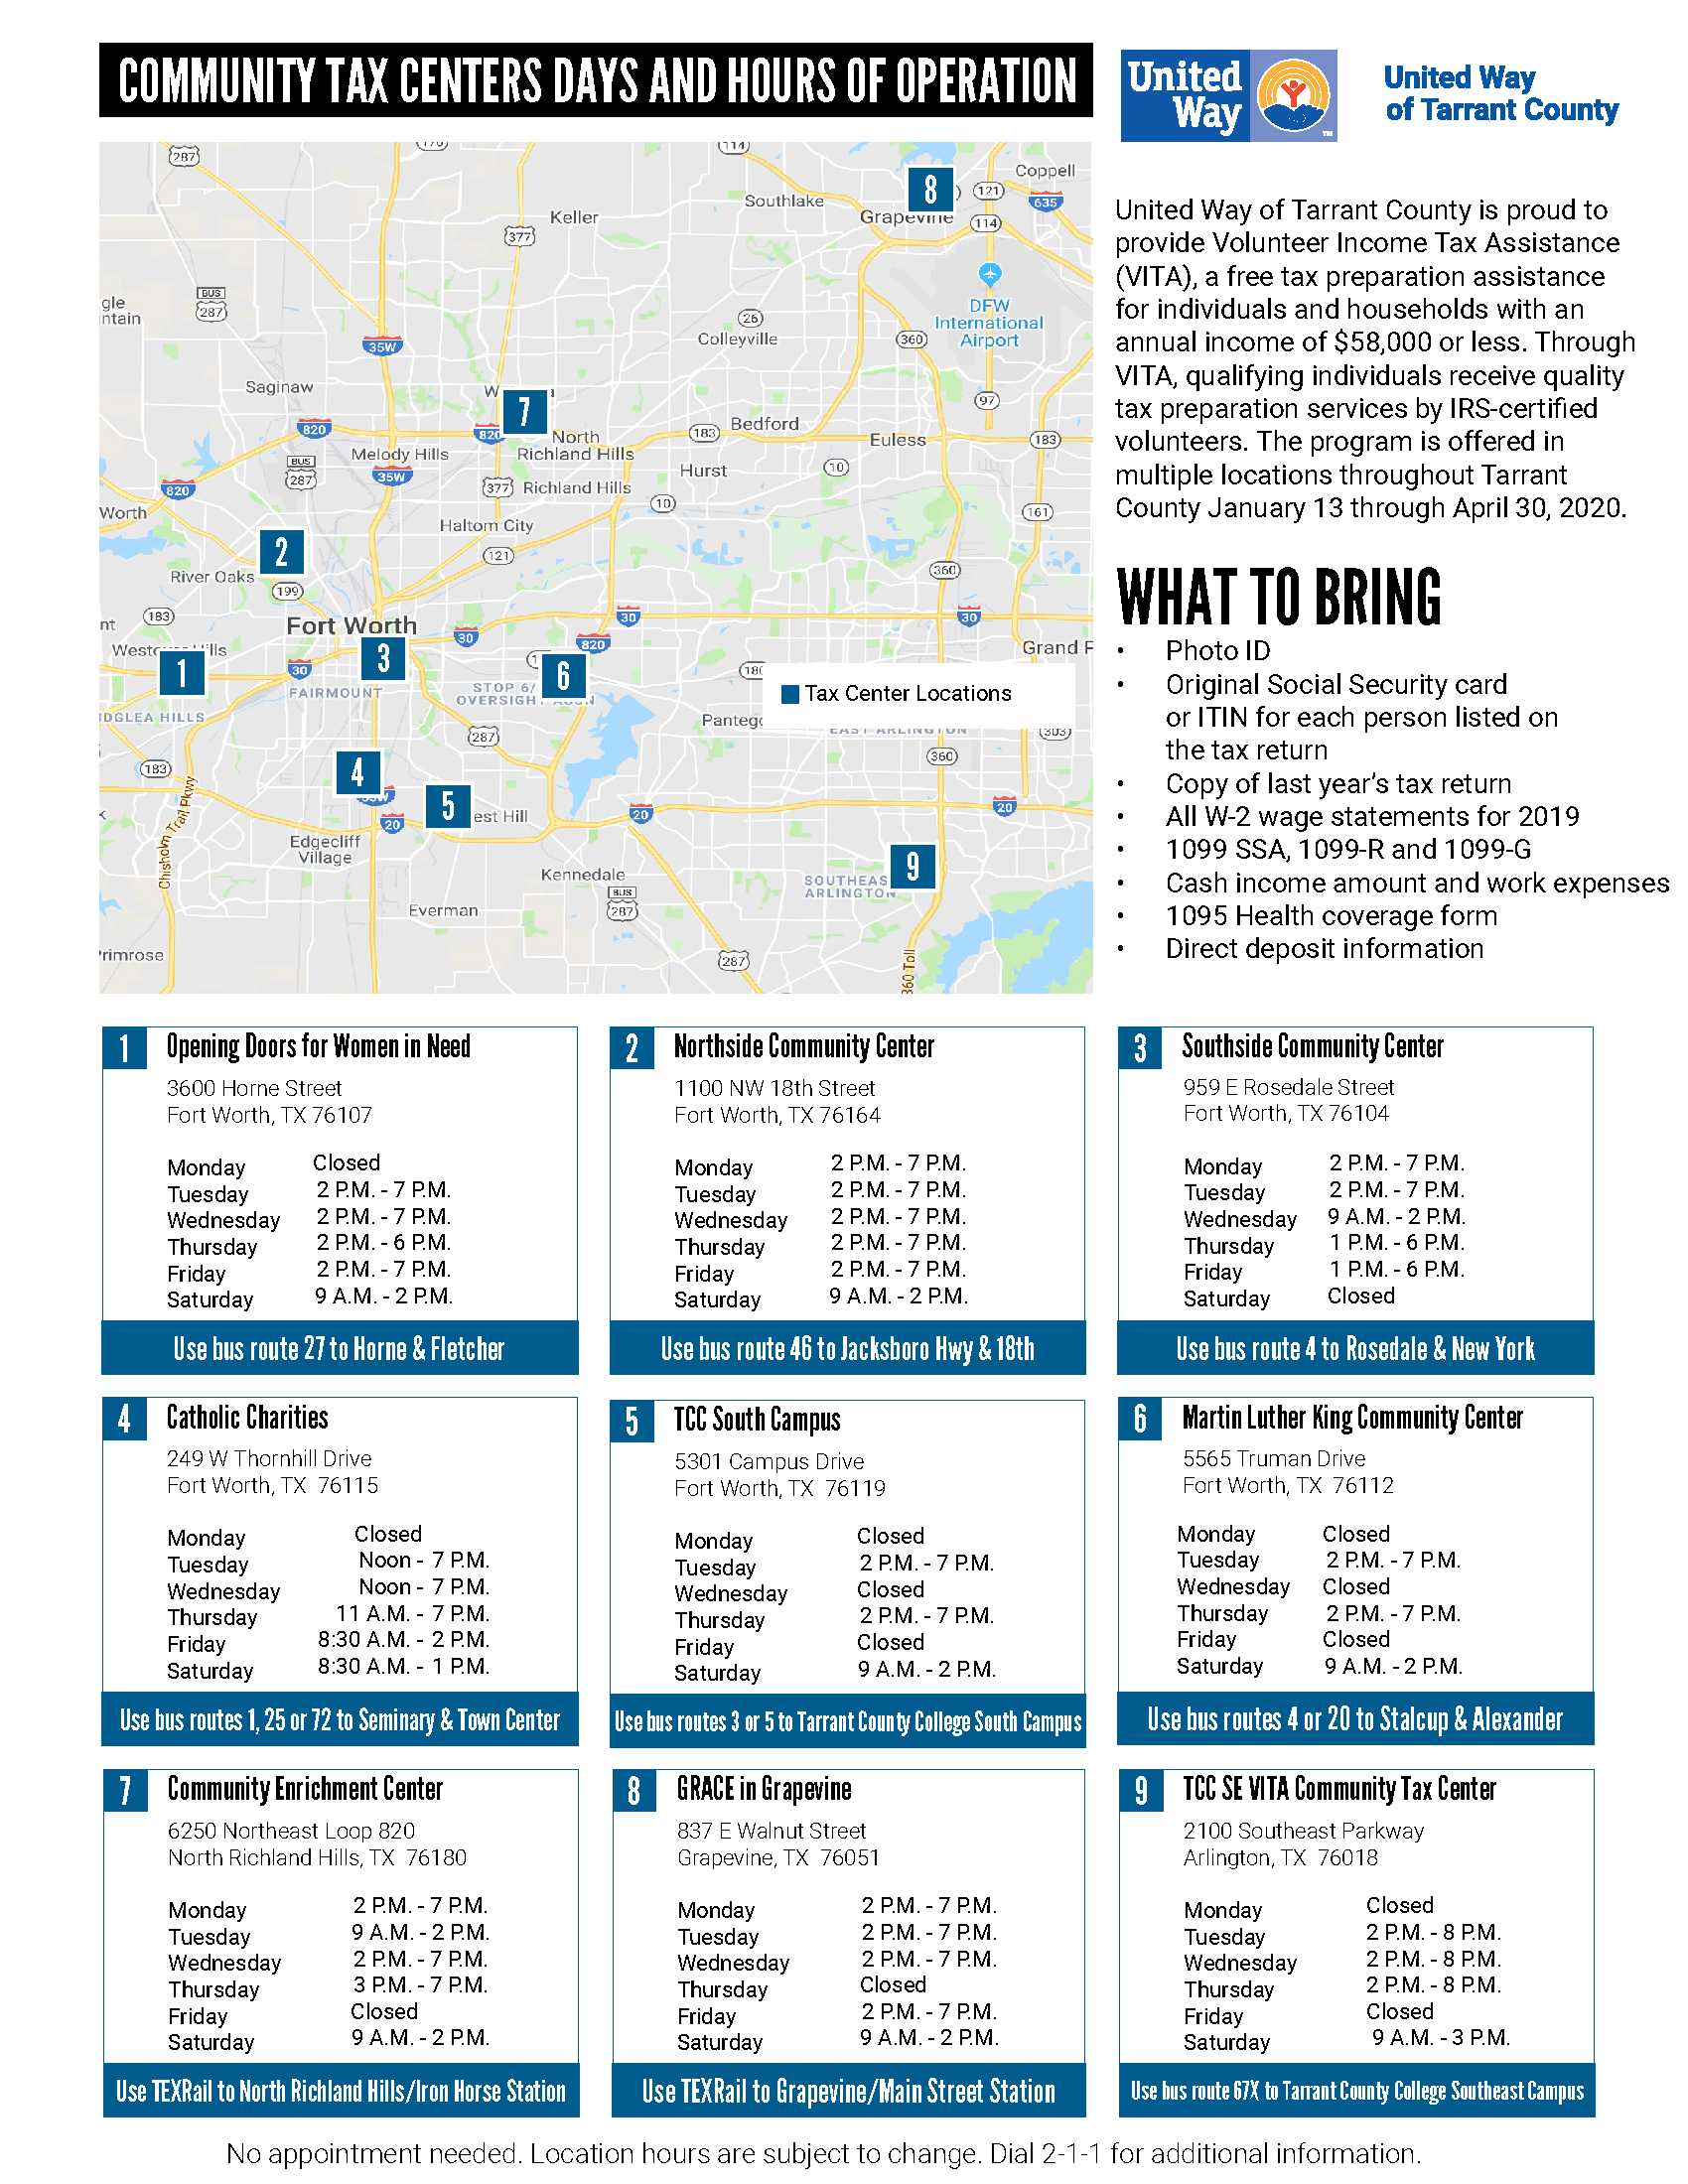 United Way Tax Center Map & Hours of Operations